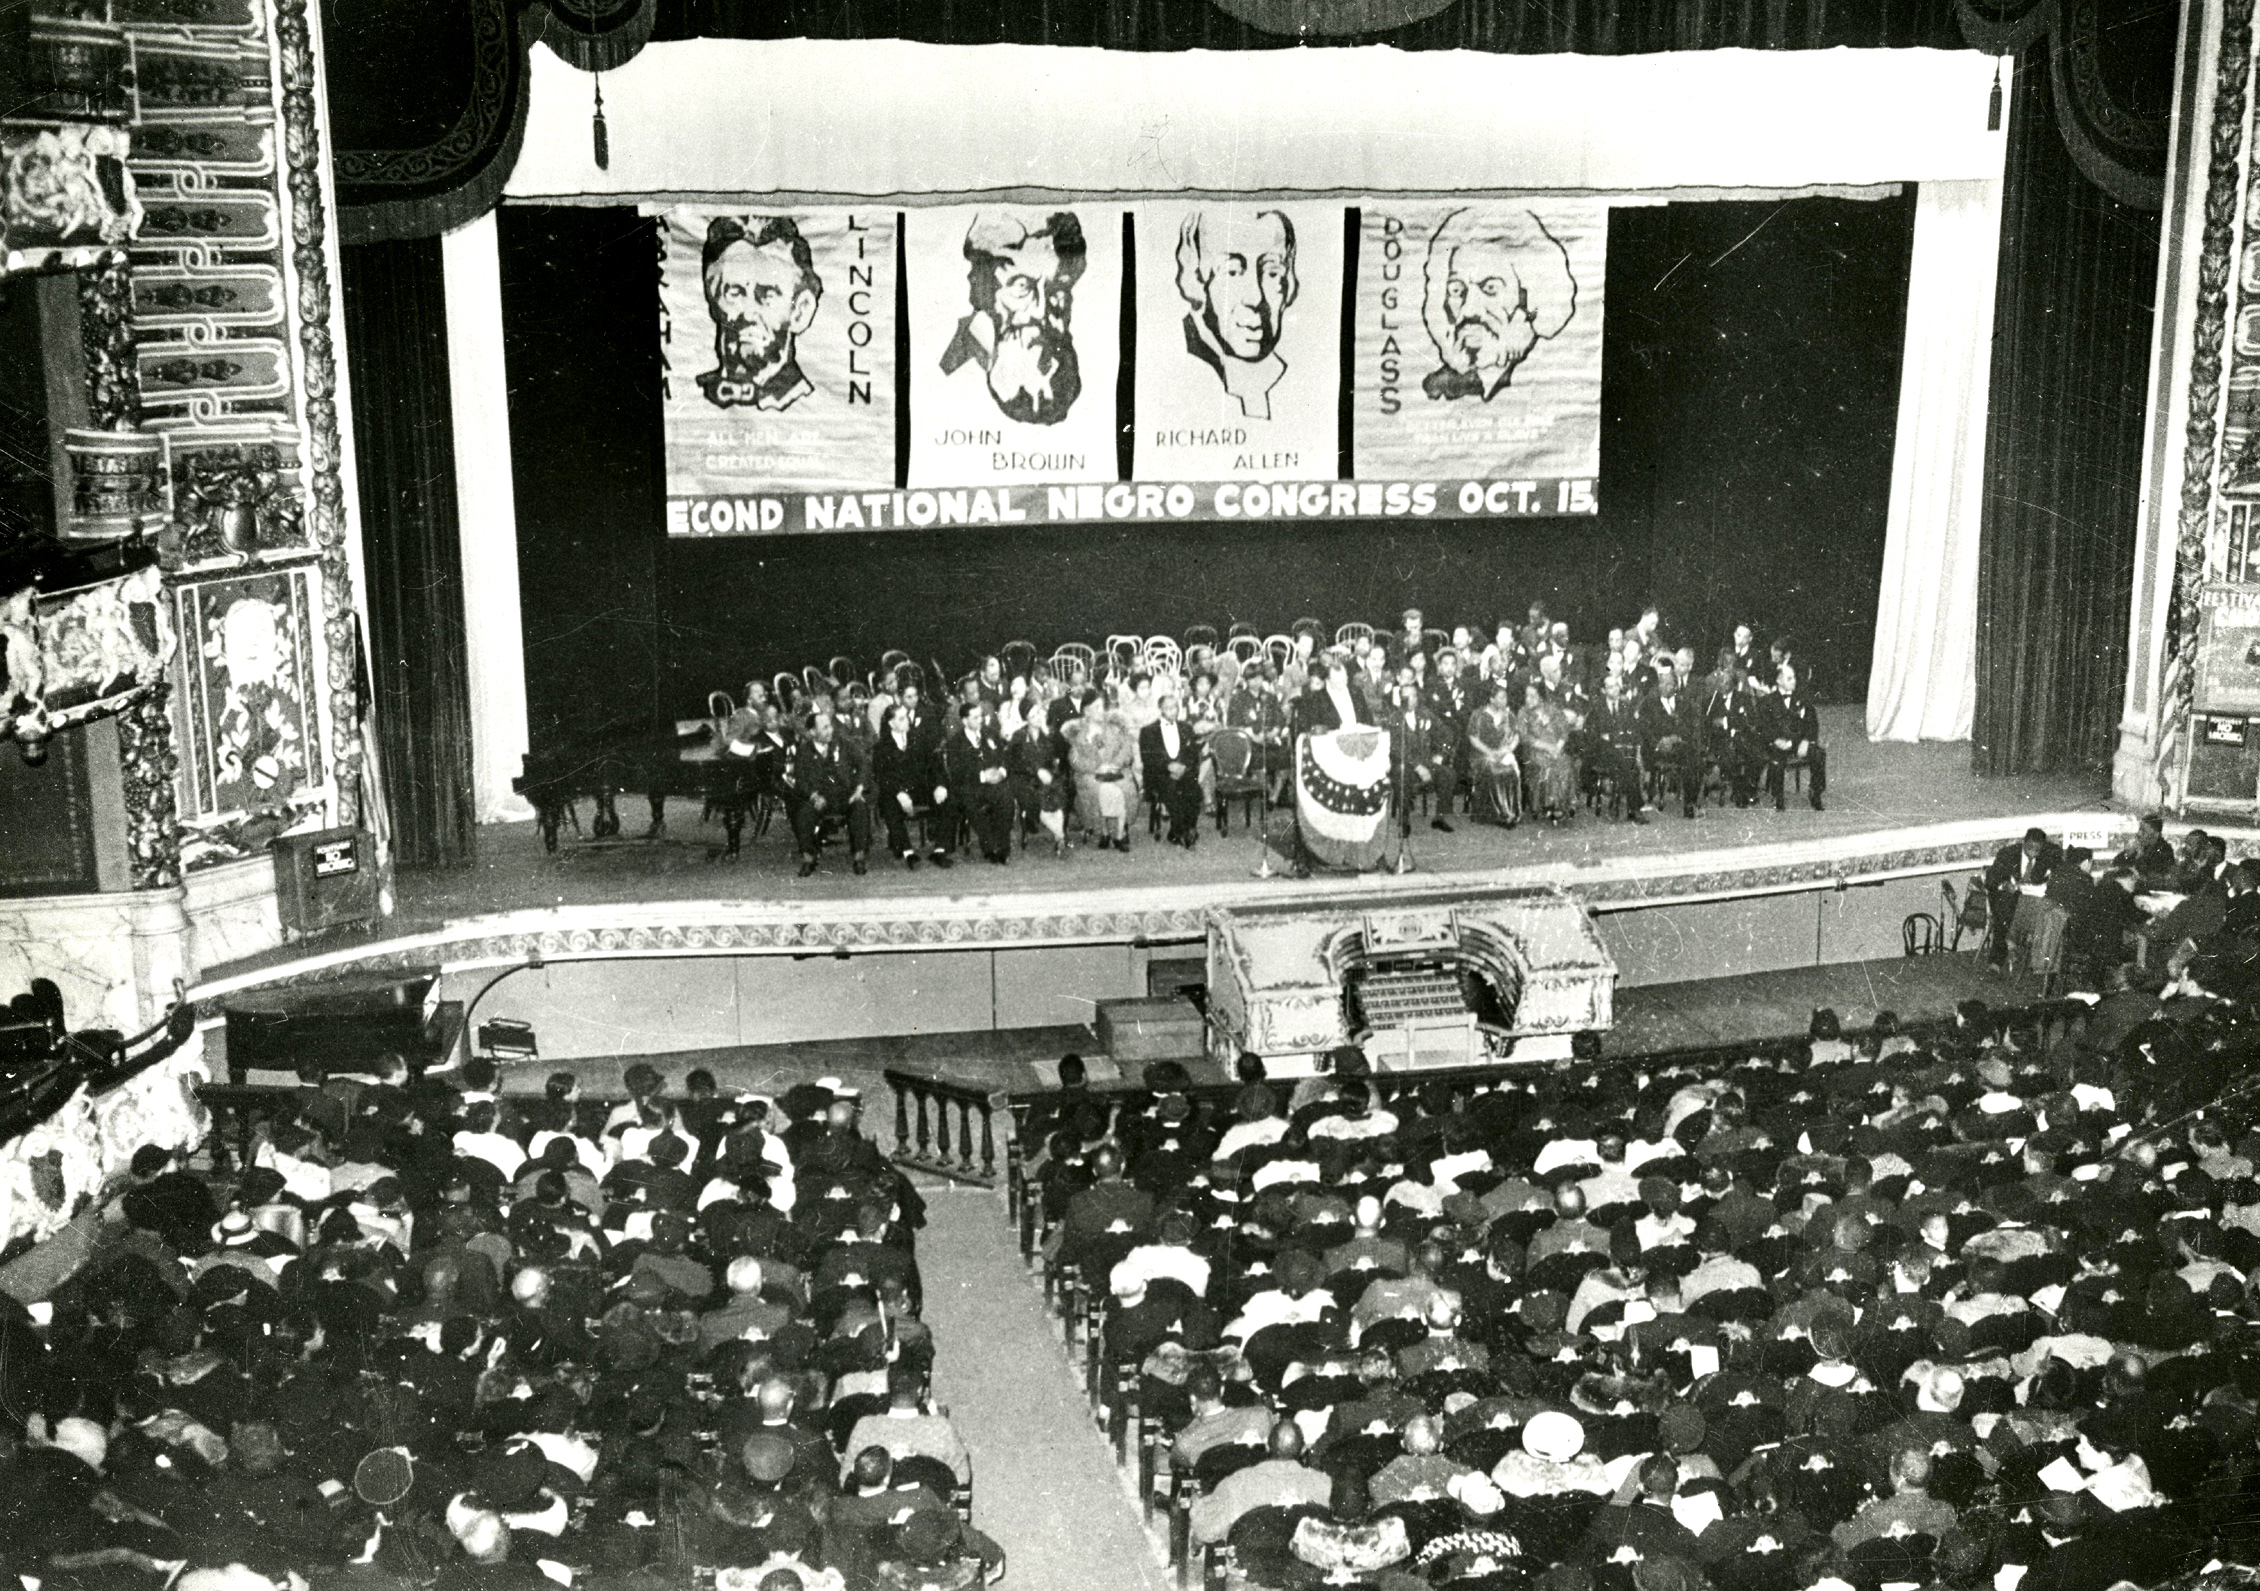 Second meeting of the Negro National Congress, Philadelphia 1937.